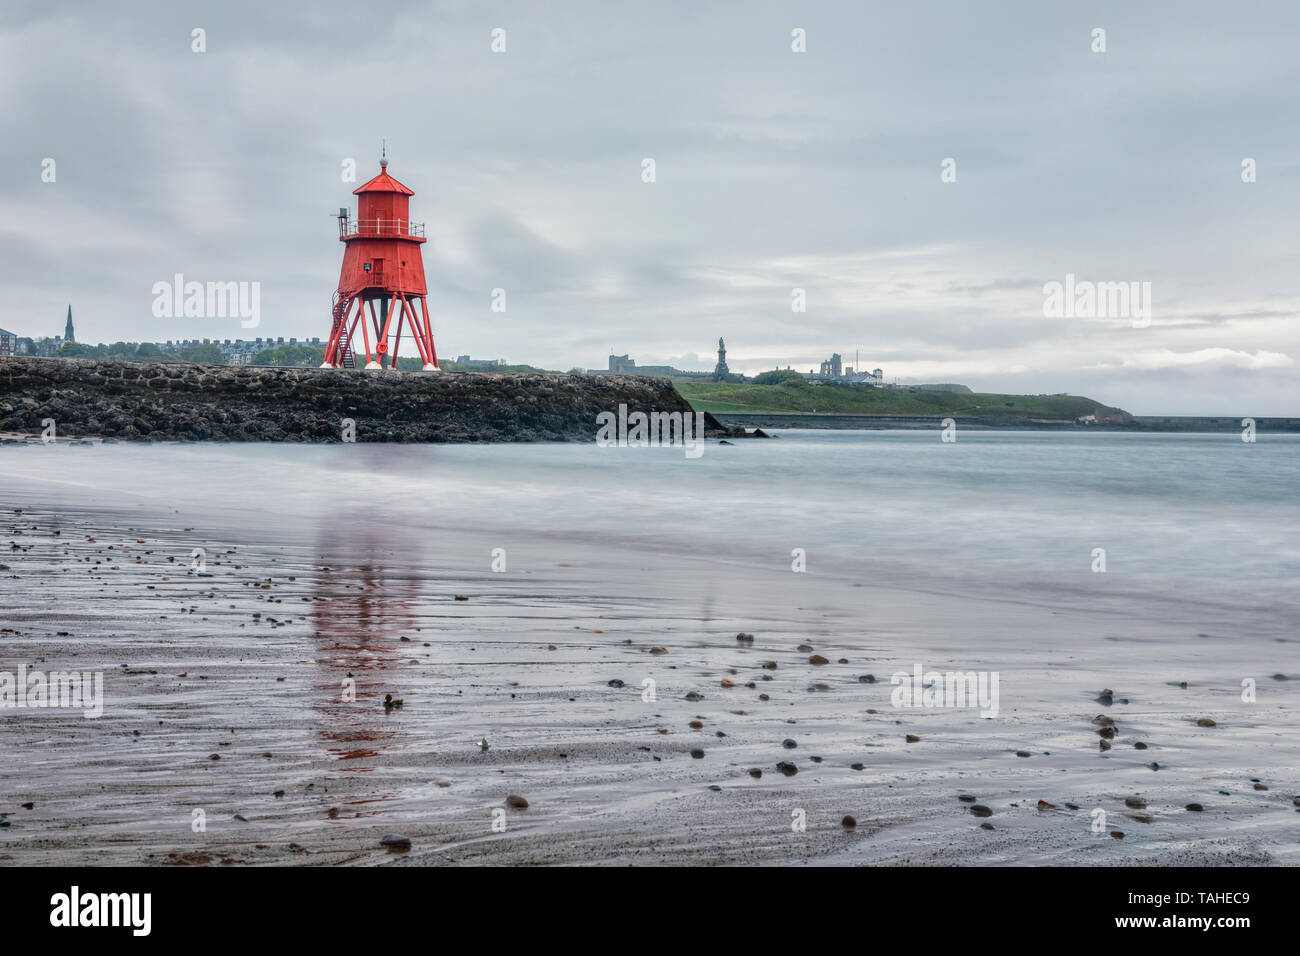 South Shields, Tyne and Wear, England, UK, Europe - Stock Image